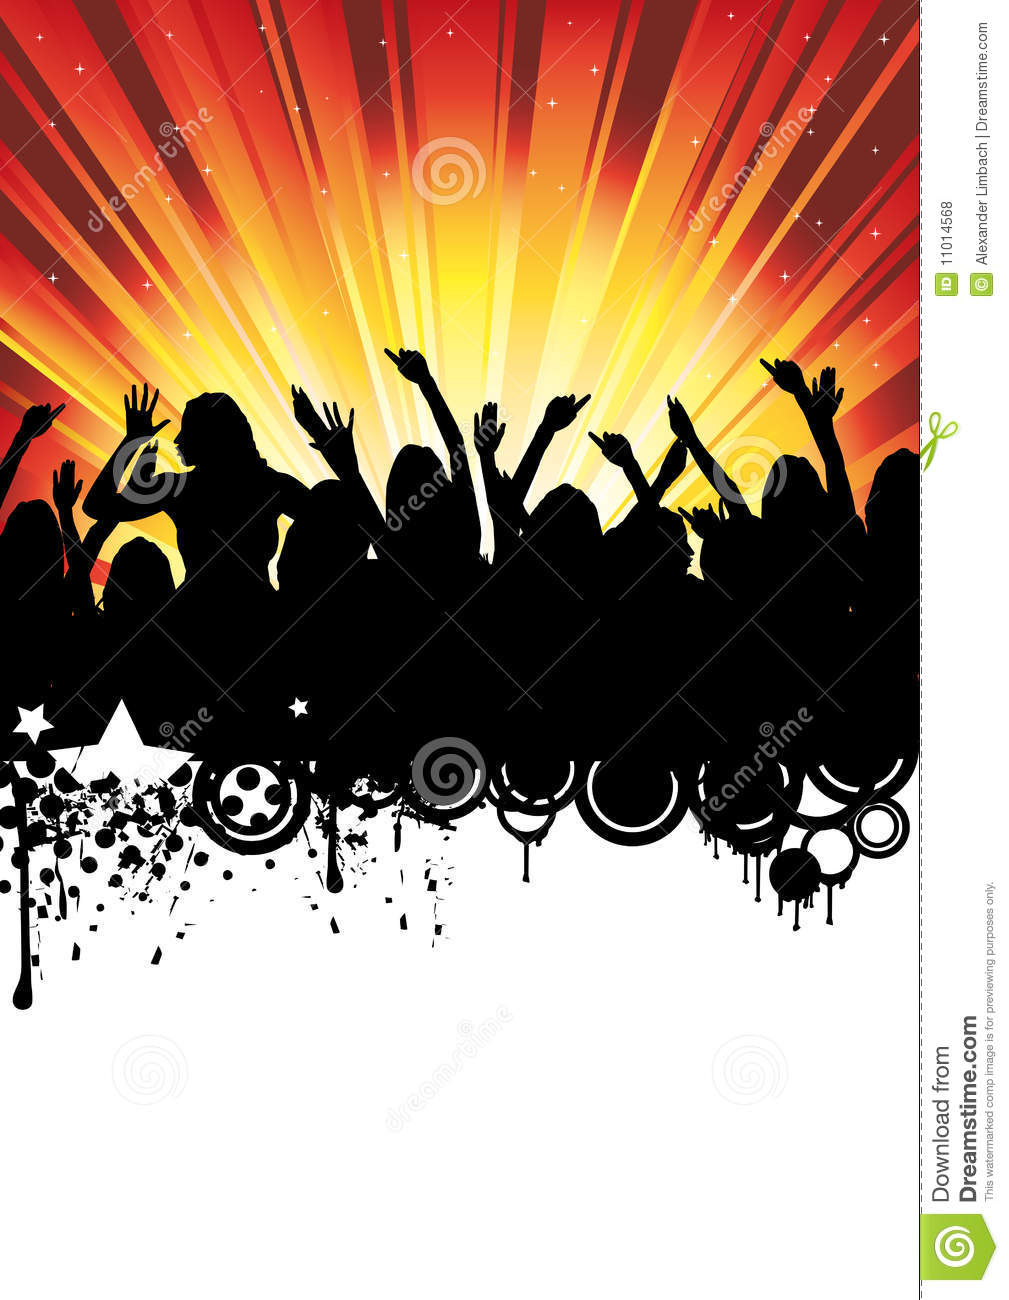 Disco Music Party Flyer Dancing People Royalty Free Stock Photos ...